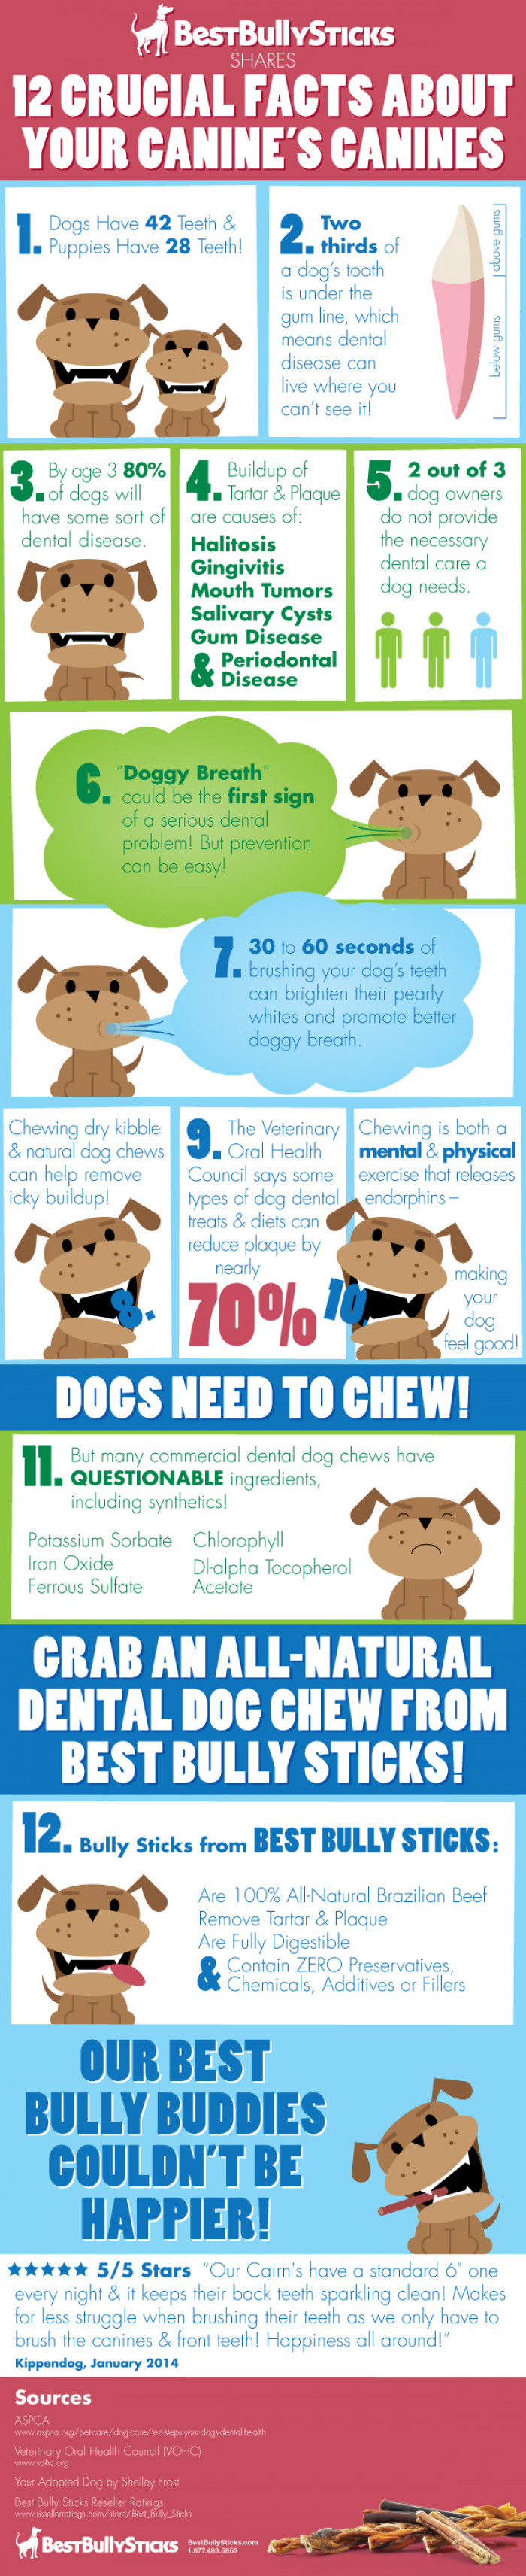 12 Crucial Facts About Your Canine